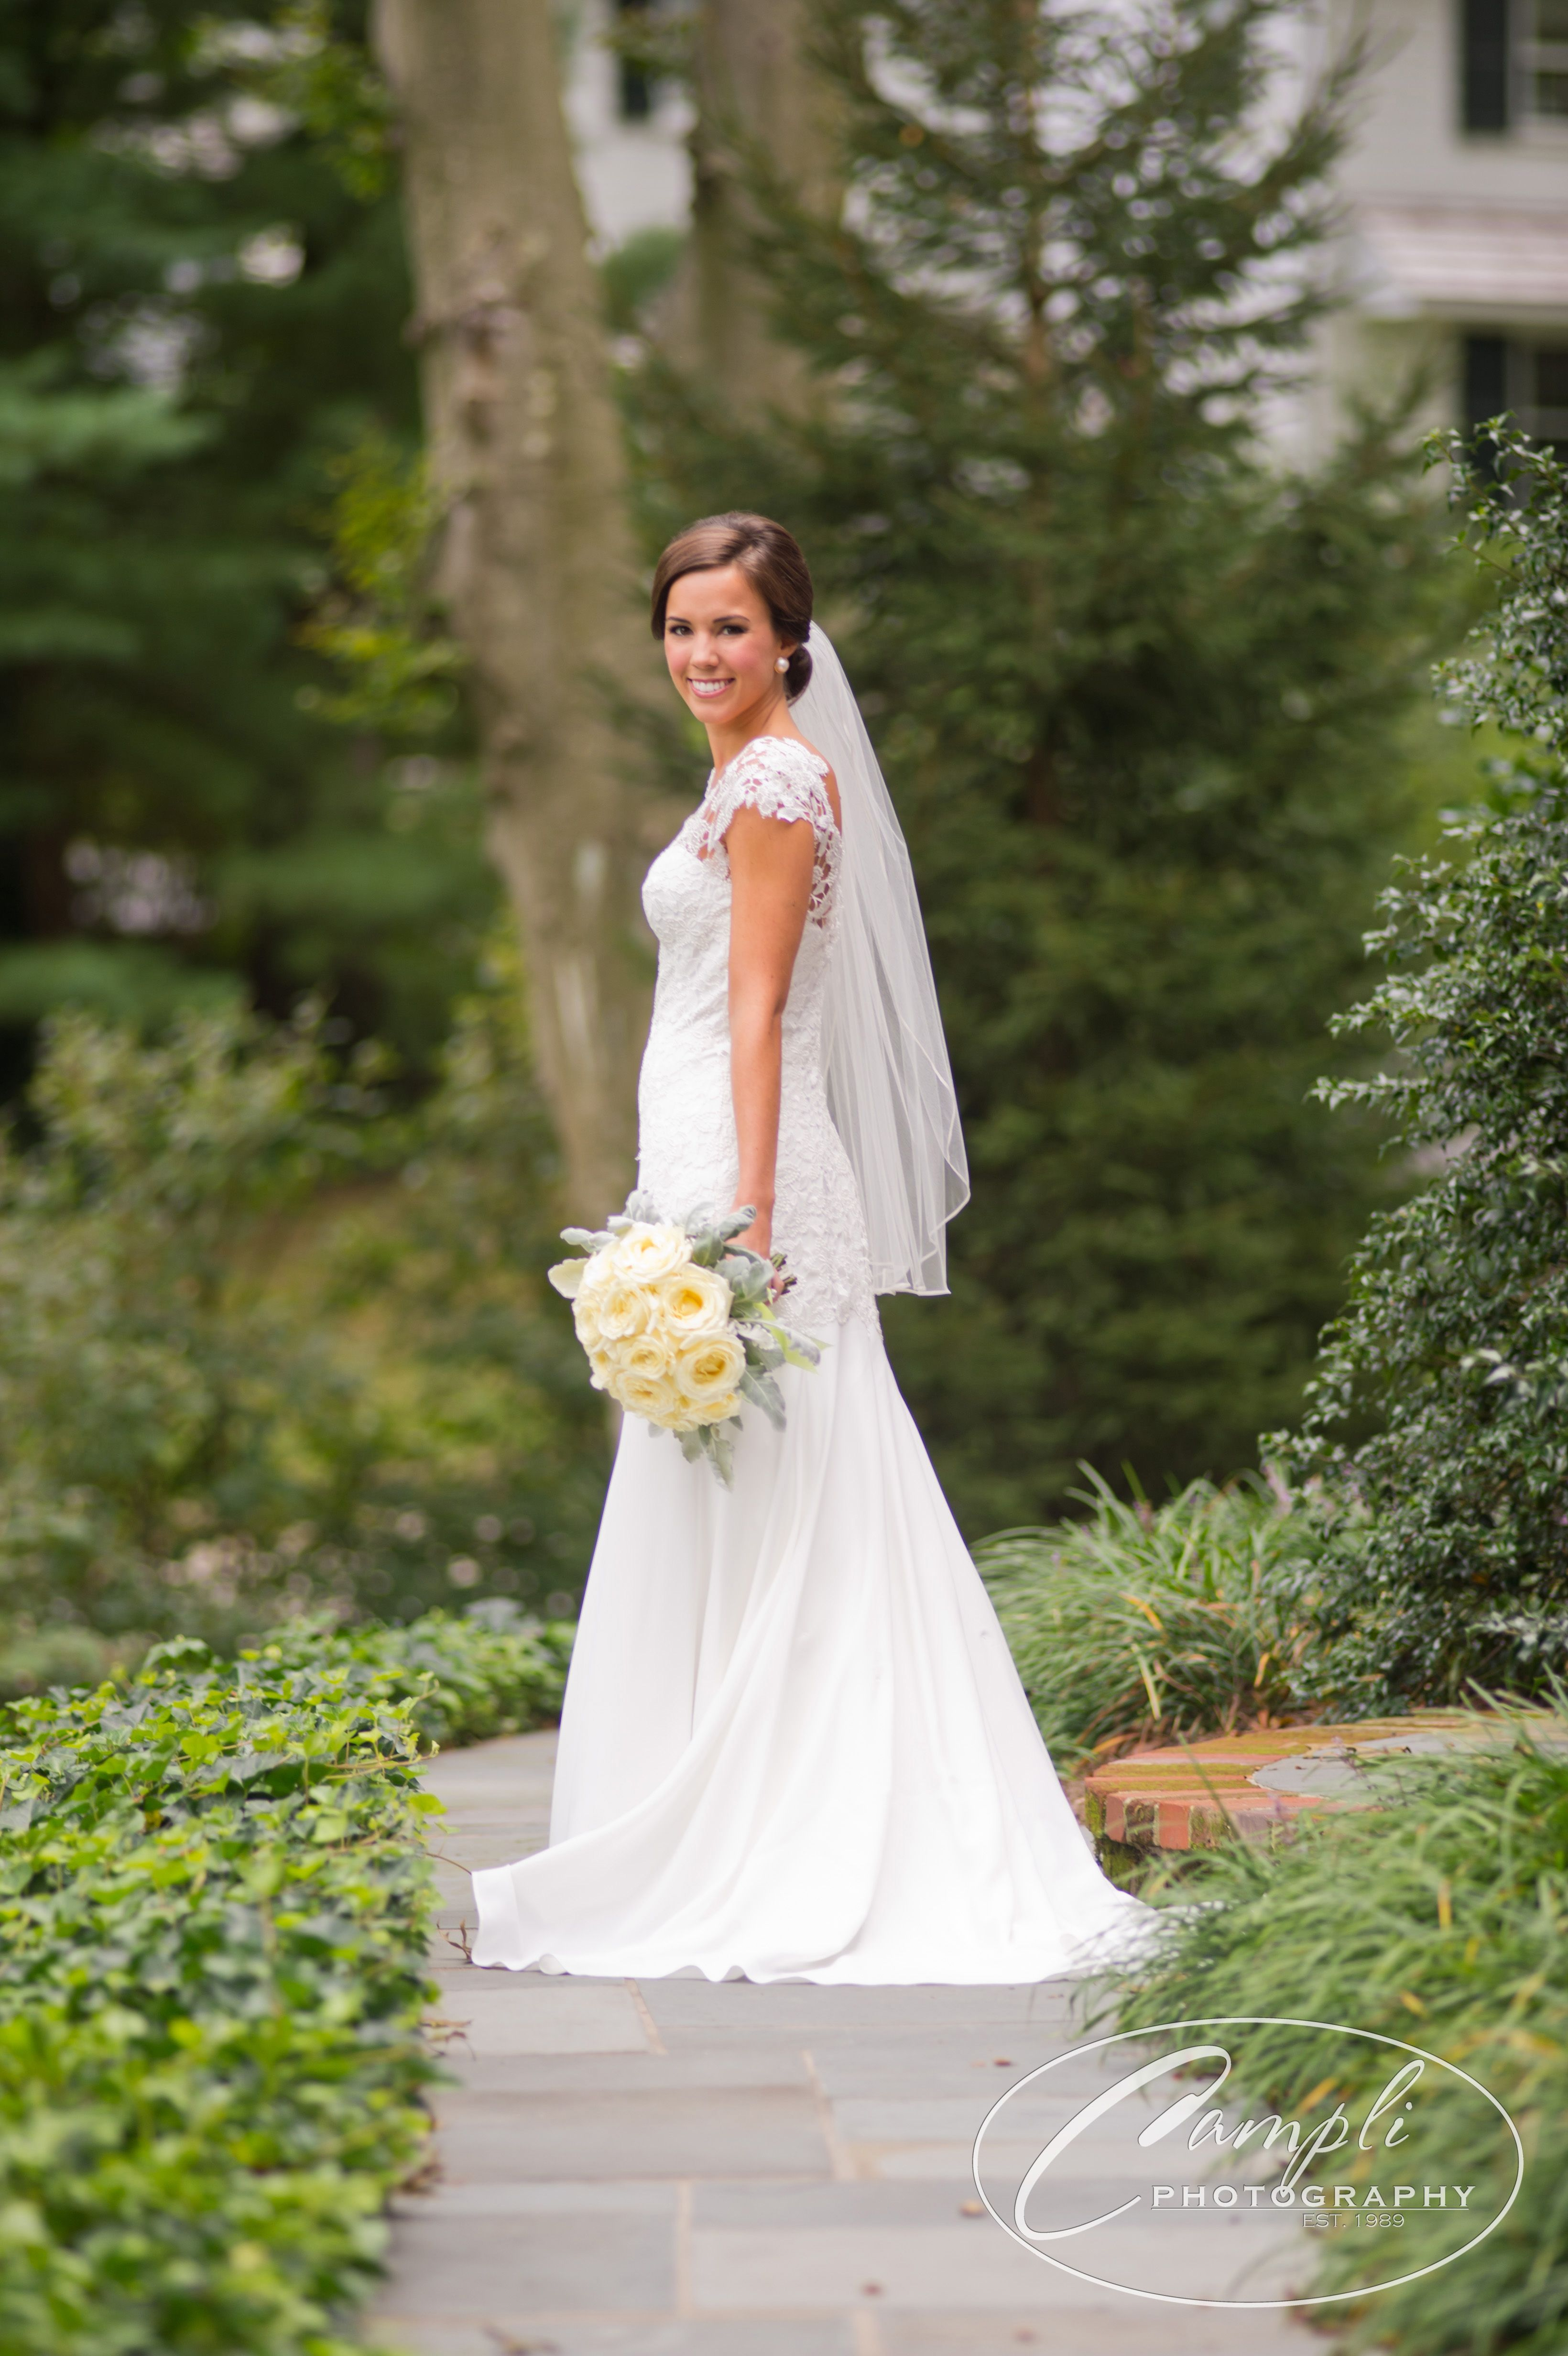 Bridal Portrait Pose For Outdoors #campliphotography